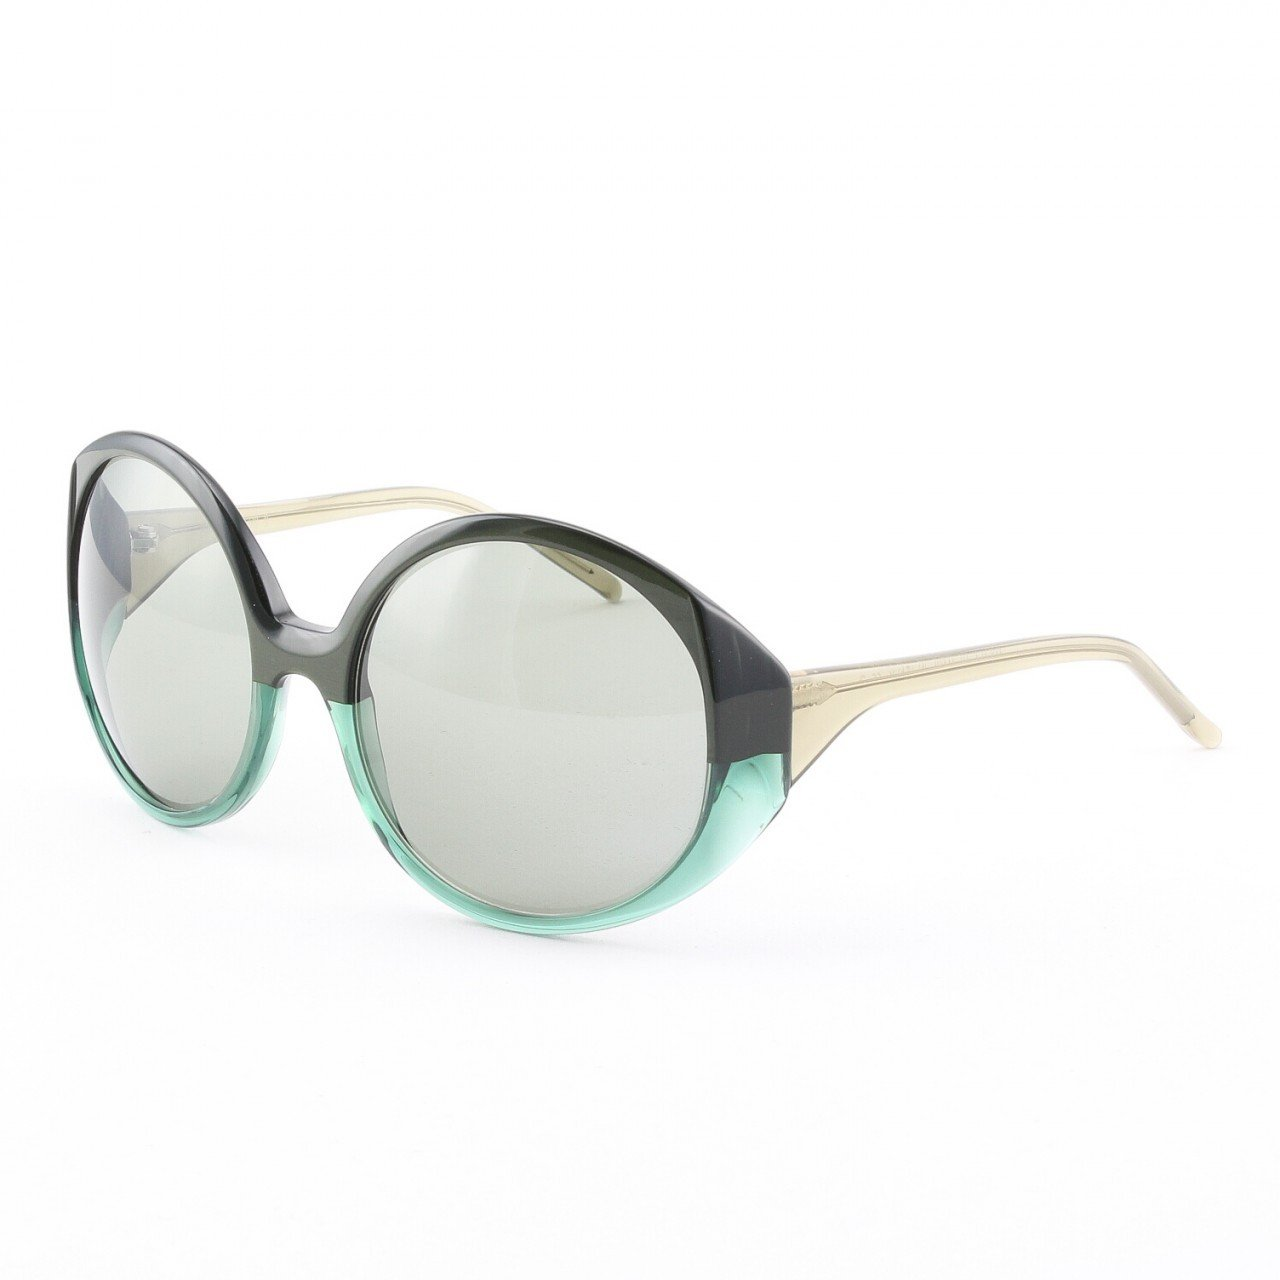 Marni MA217 Sunglasses Col. 01 Opaque and Translucent Green with Green Lenses